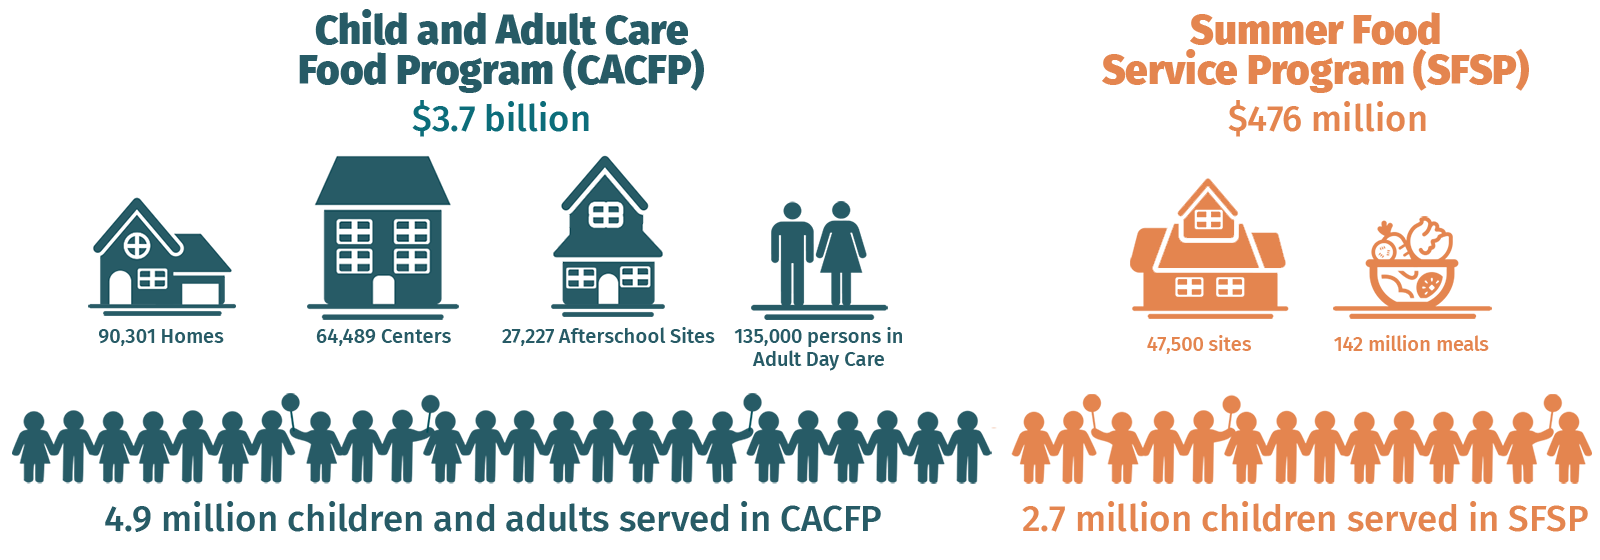 CACFP SFSP Infographic with adults